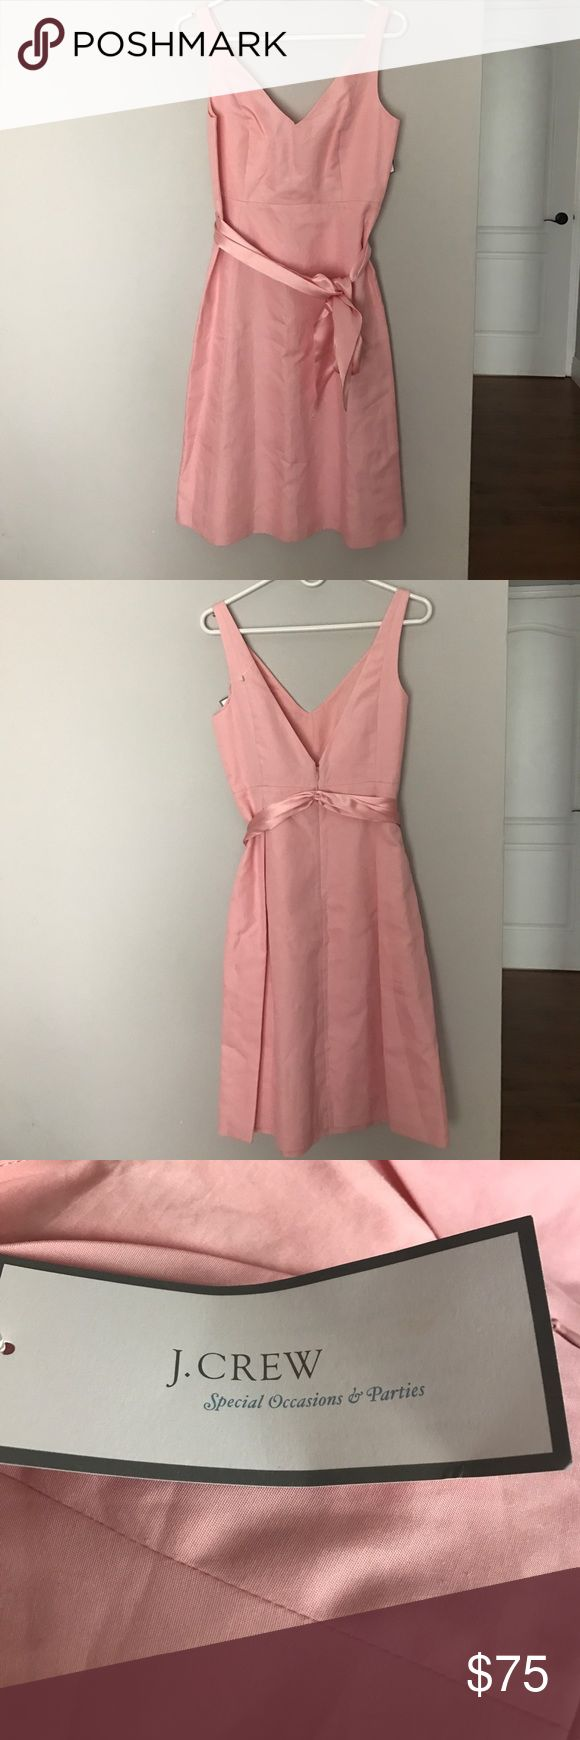 J. Crew cotton cady Lyndsey dress pink Brand new and unworn special occasion dress from J. Crew. Back zipper, tie sash, snaps under straps to hold bra in place. Pretty pink color. J. Crew Dresses Midi